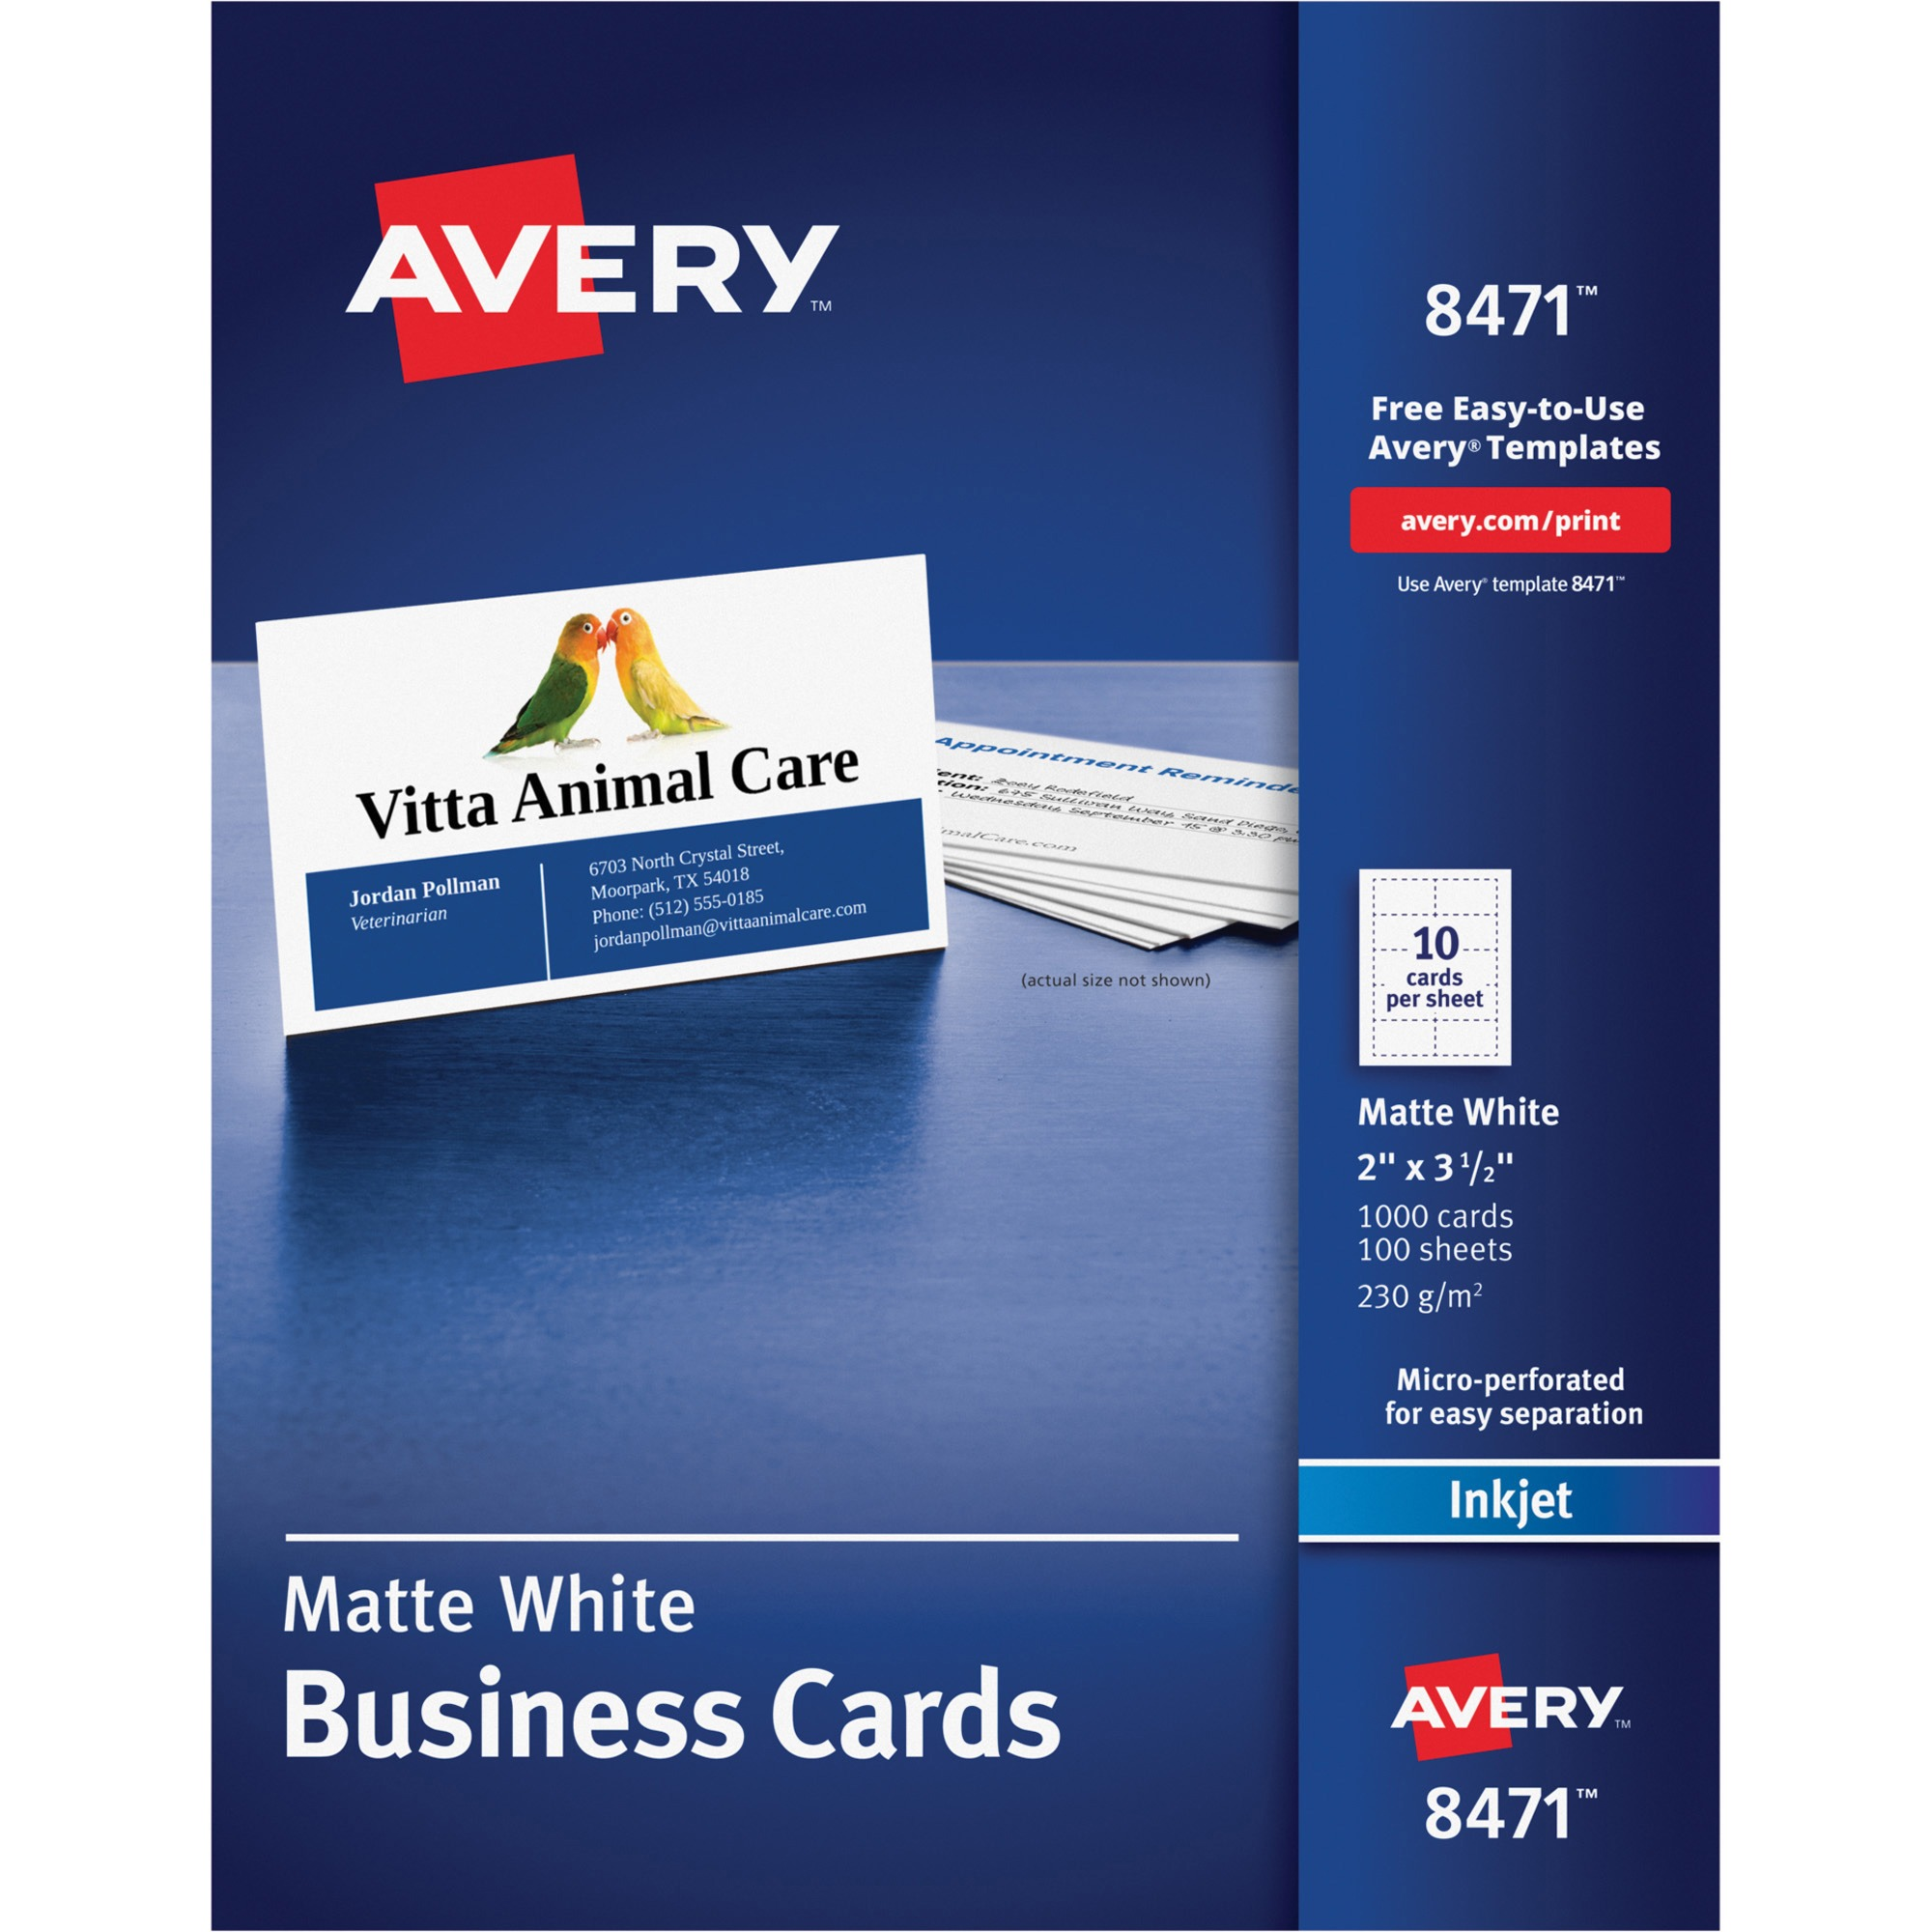 Avery business cards matte white 2 x 3 12 1000 count avery business cards matte white 2 x 3 12 1000 count walmart reheart Images